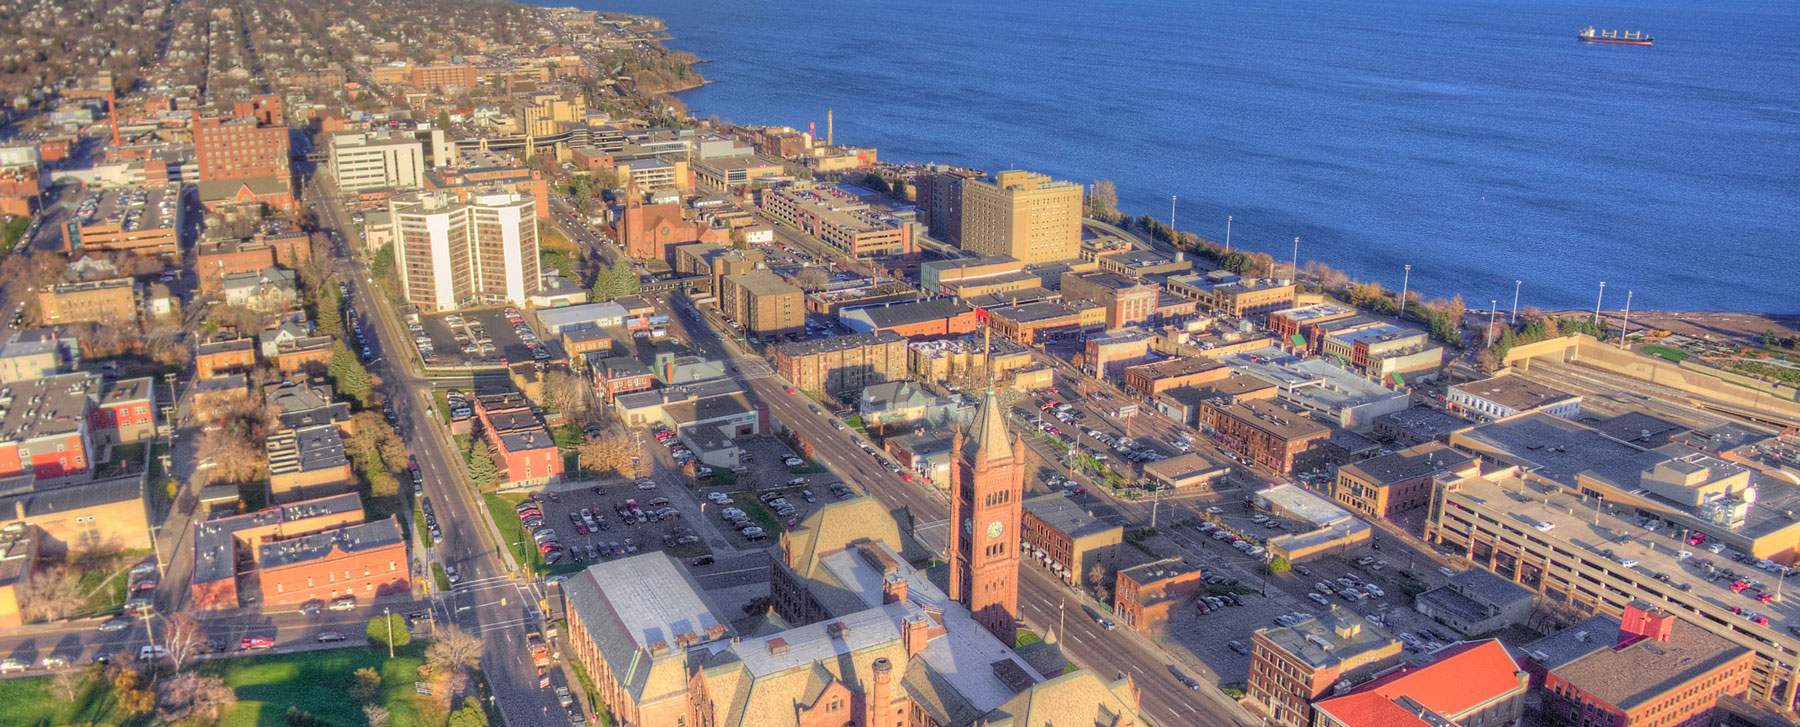 Drone photo of downtown Duluth, MN.